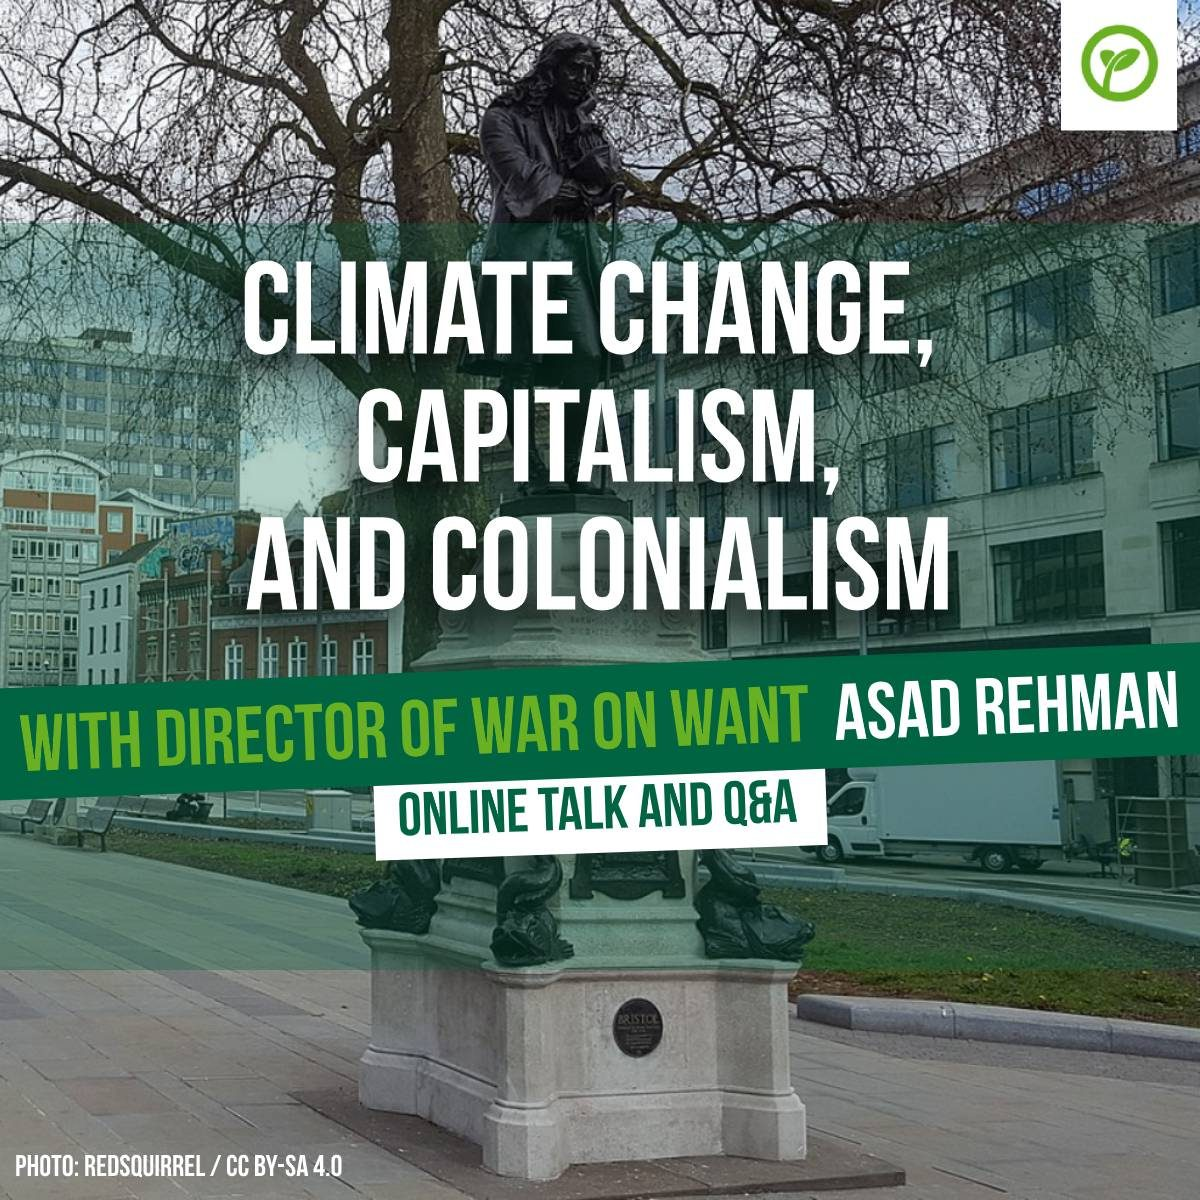 Climate Change, Capitalism, and Colonialism with Director of War on Want Asad Rehman. Online talk and Q&A. Photo: RedSquirrel - CC-BY-4.0